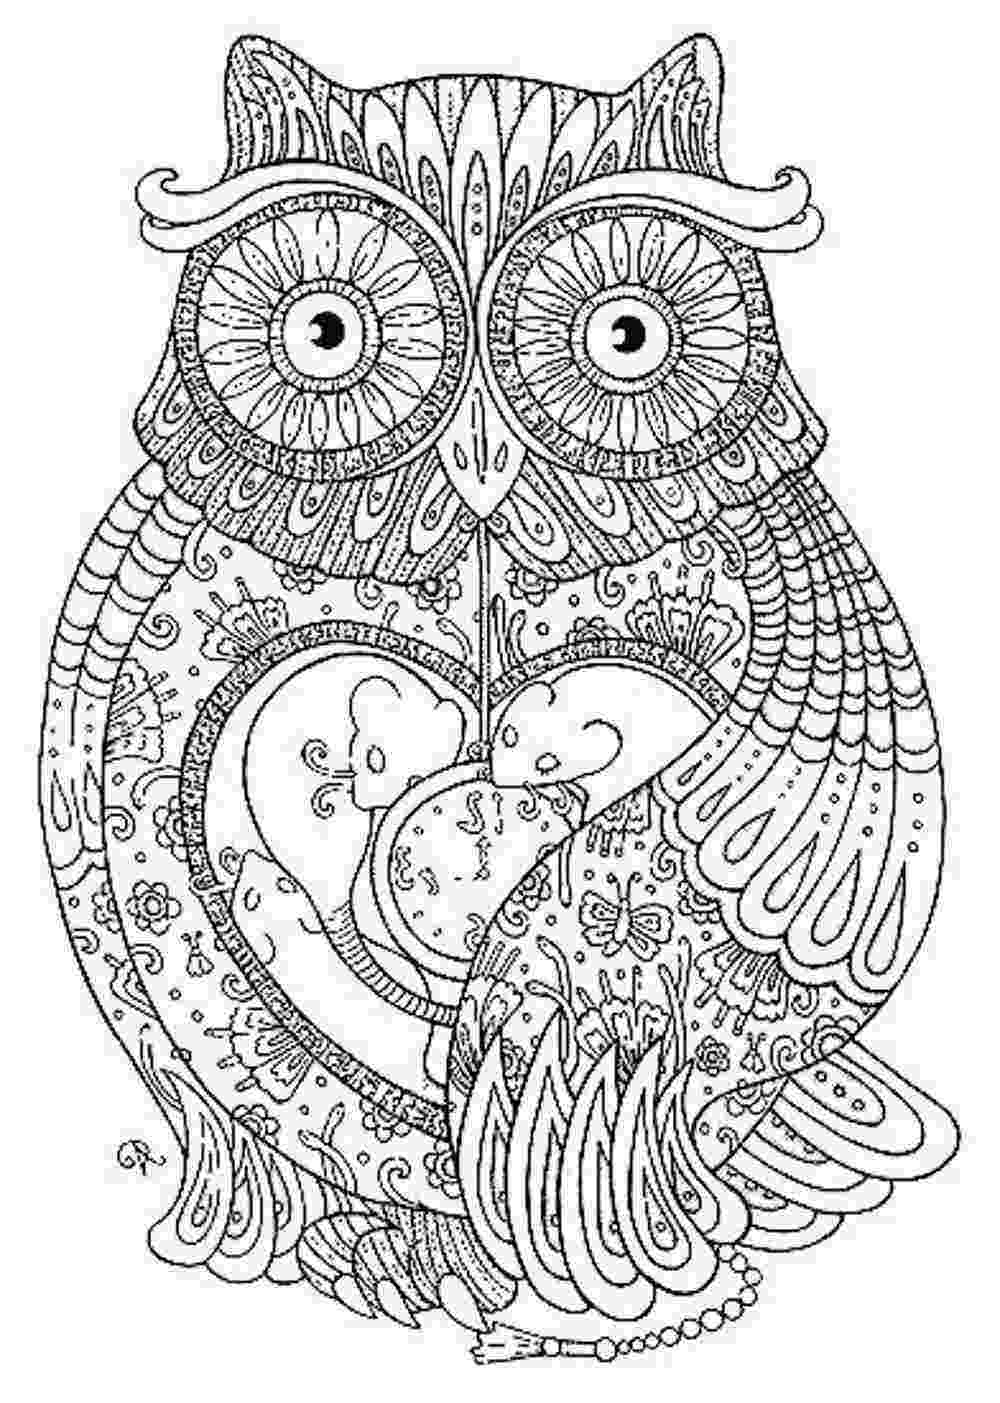 coloring pages for adults free online free online colouring pages coloring pages for adults pages coloring online adults for free